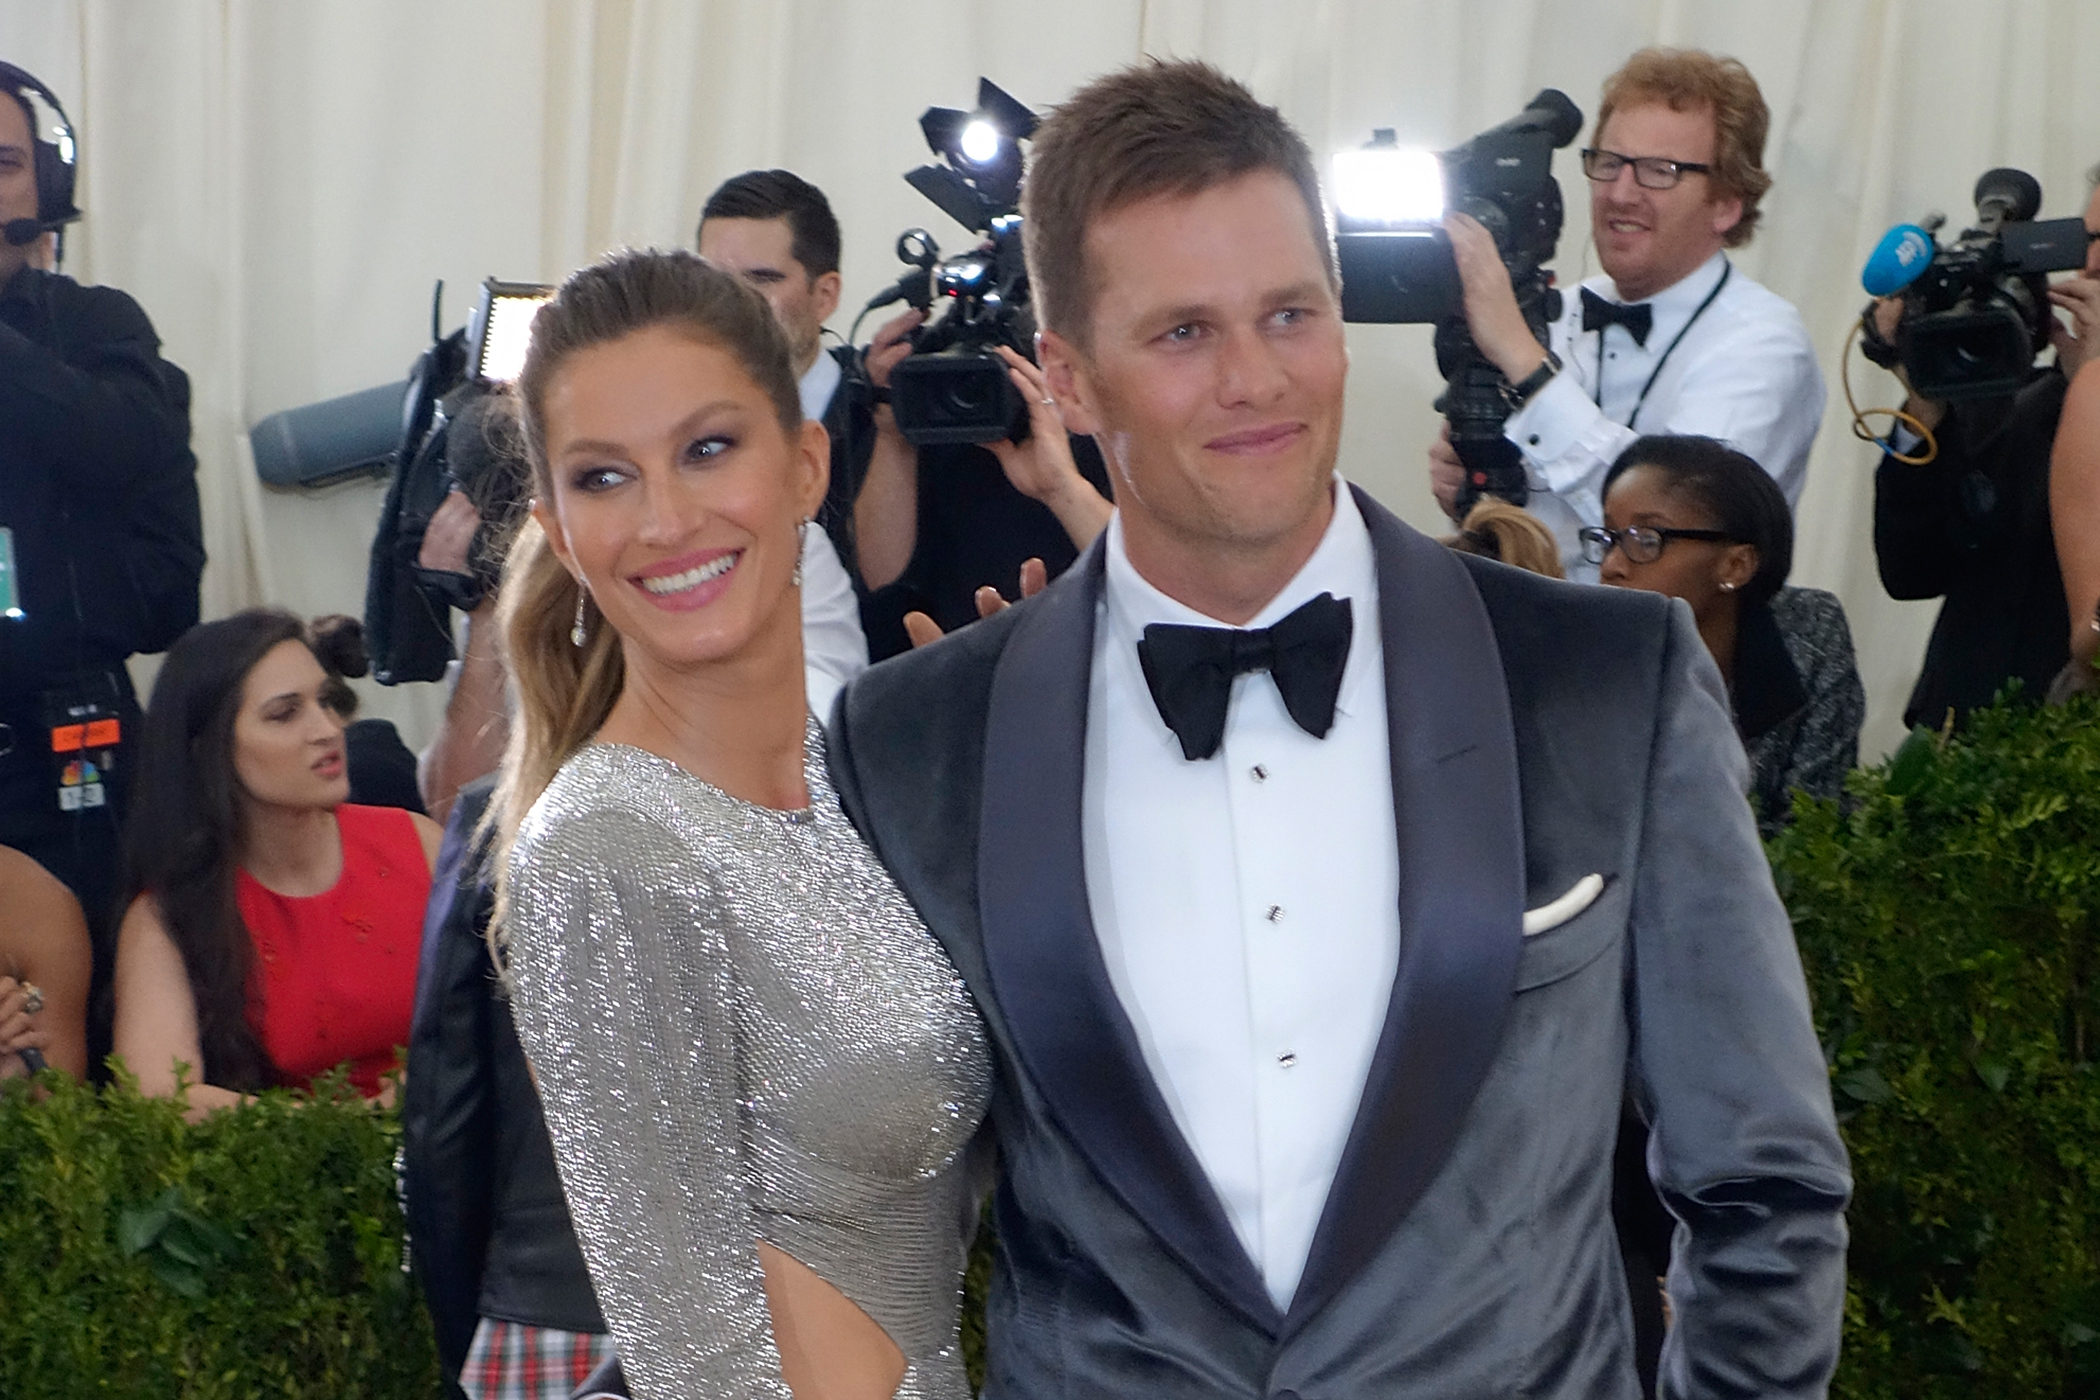 170706-richer-wives-tom-brady-gisele-bundchen